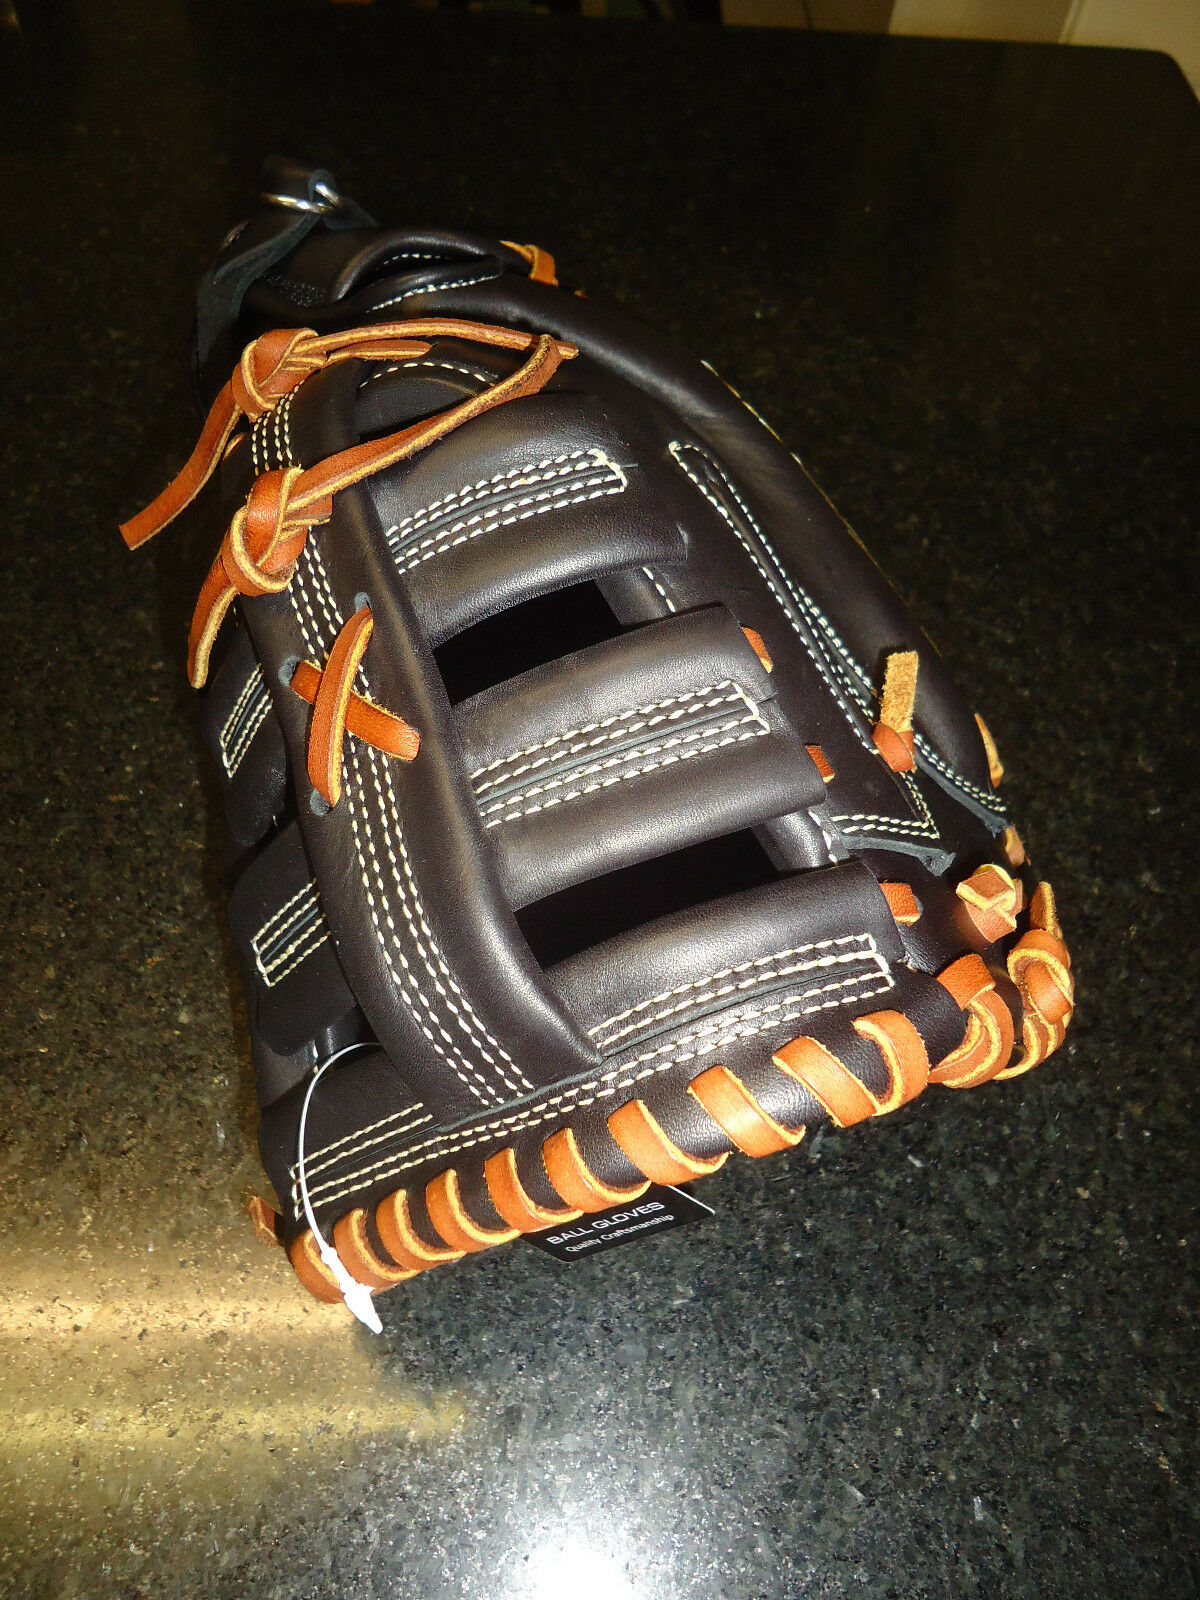 MIZUNO GLOBAL ELITE GXF11 FIRST BASE (1B) MITT / / MITT GLOVE 13